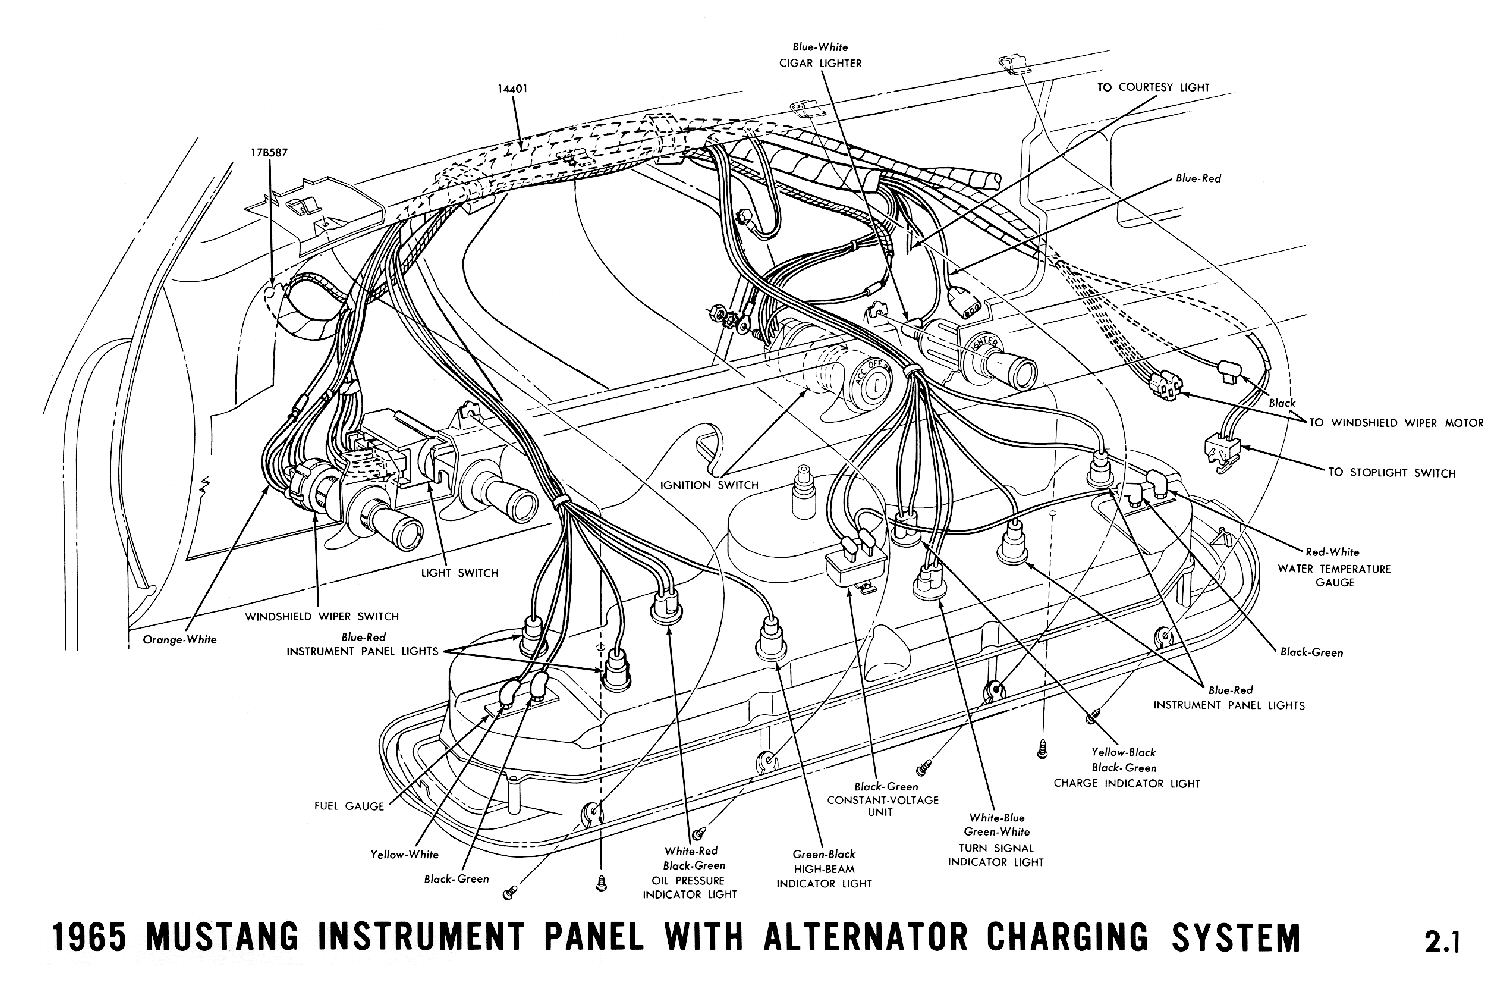 332842 Clutch Rod Bent moreover 1965 Mustang Wiring Diagrams moreover Wiring Diagrams For 1998 Ford Mustang Diagrams Download as well Caterpillar Forklift Transmission Wiring Diagram together with Chevrolet P30 Motorhome. on 1963 ford galaxie wiring diagram